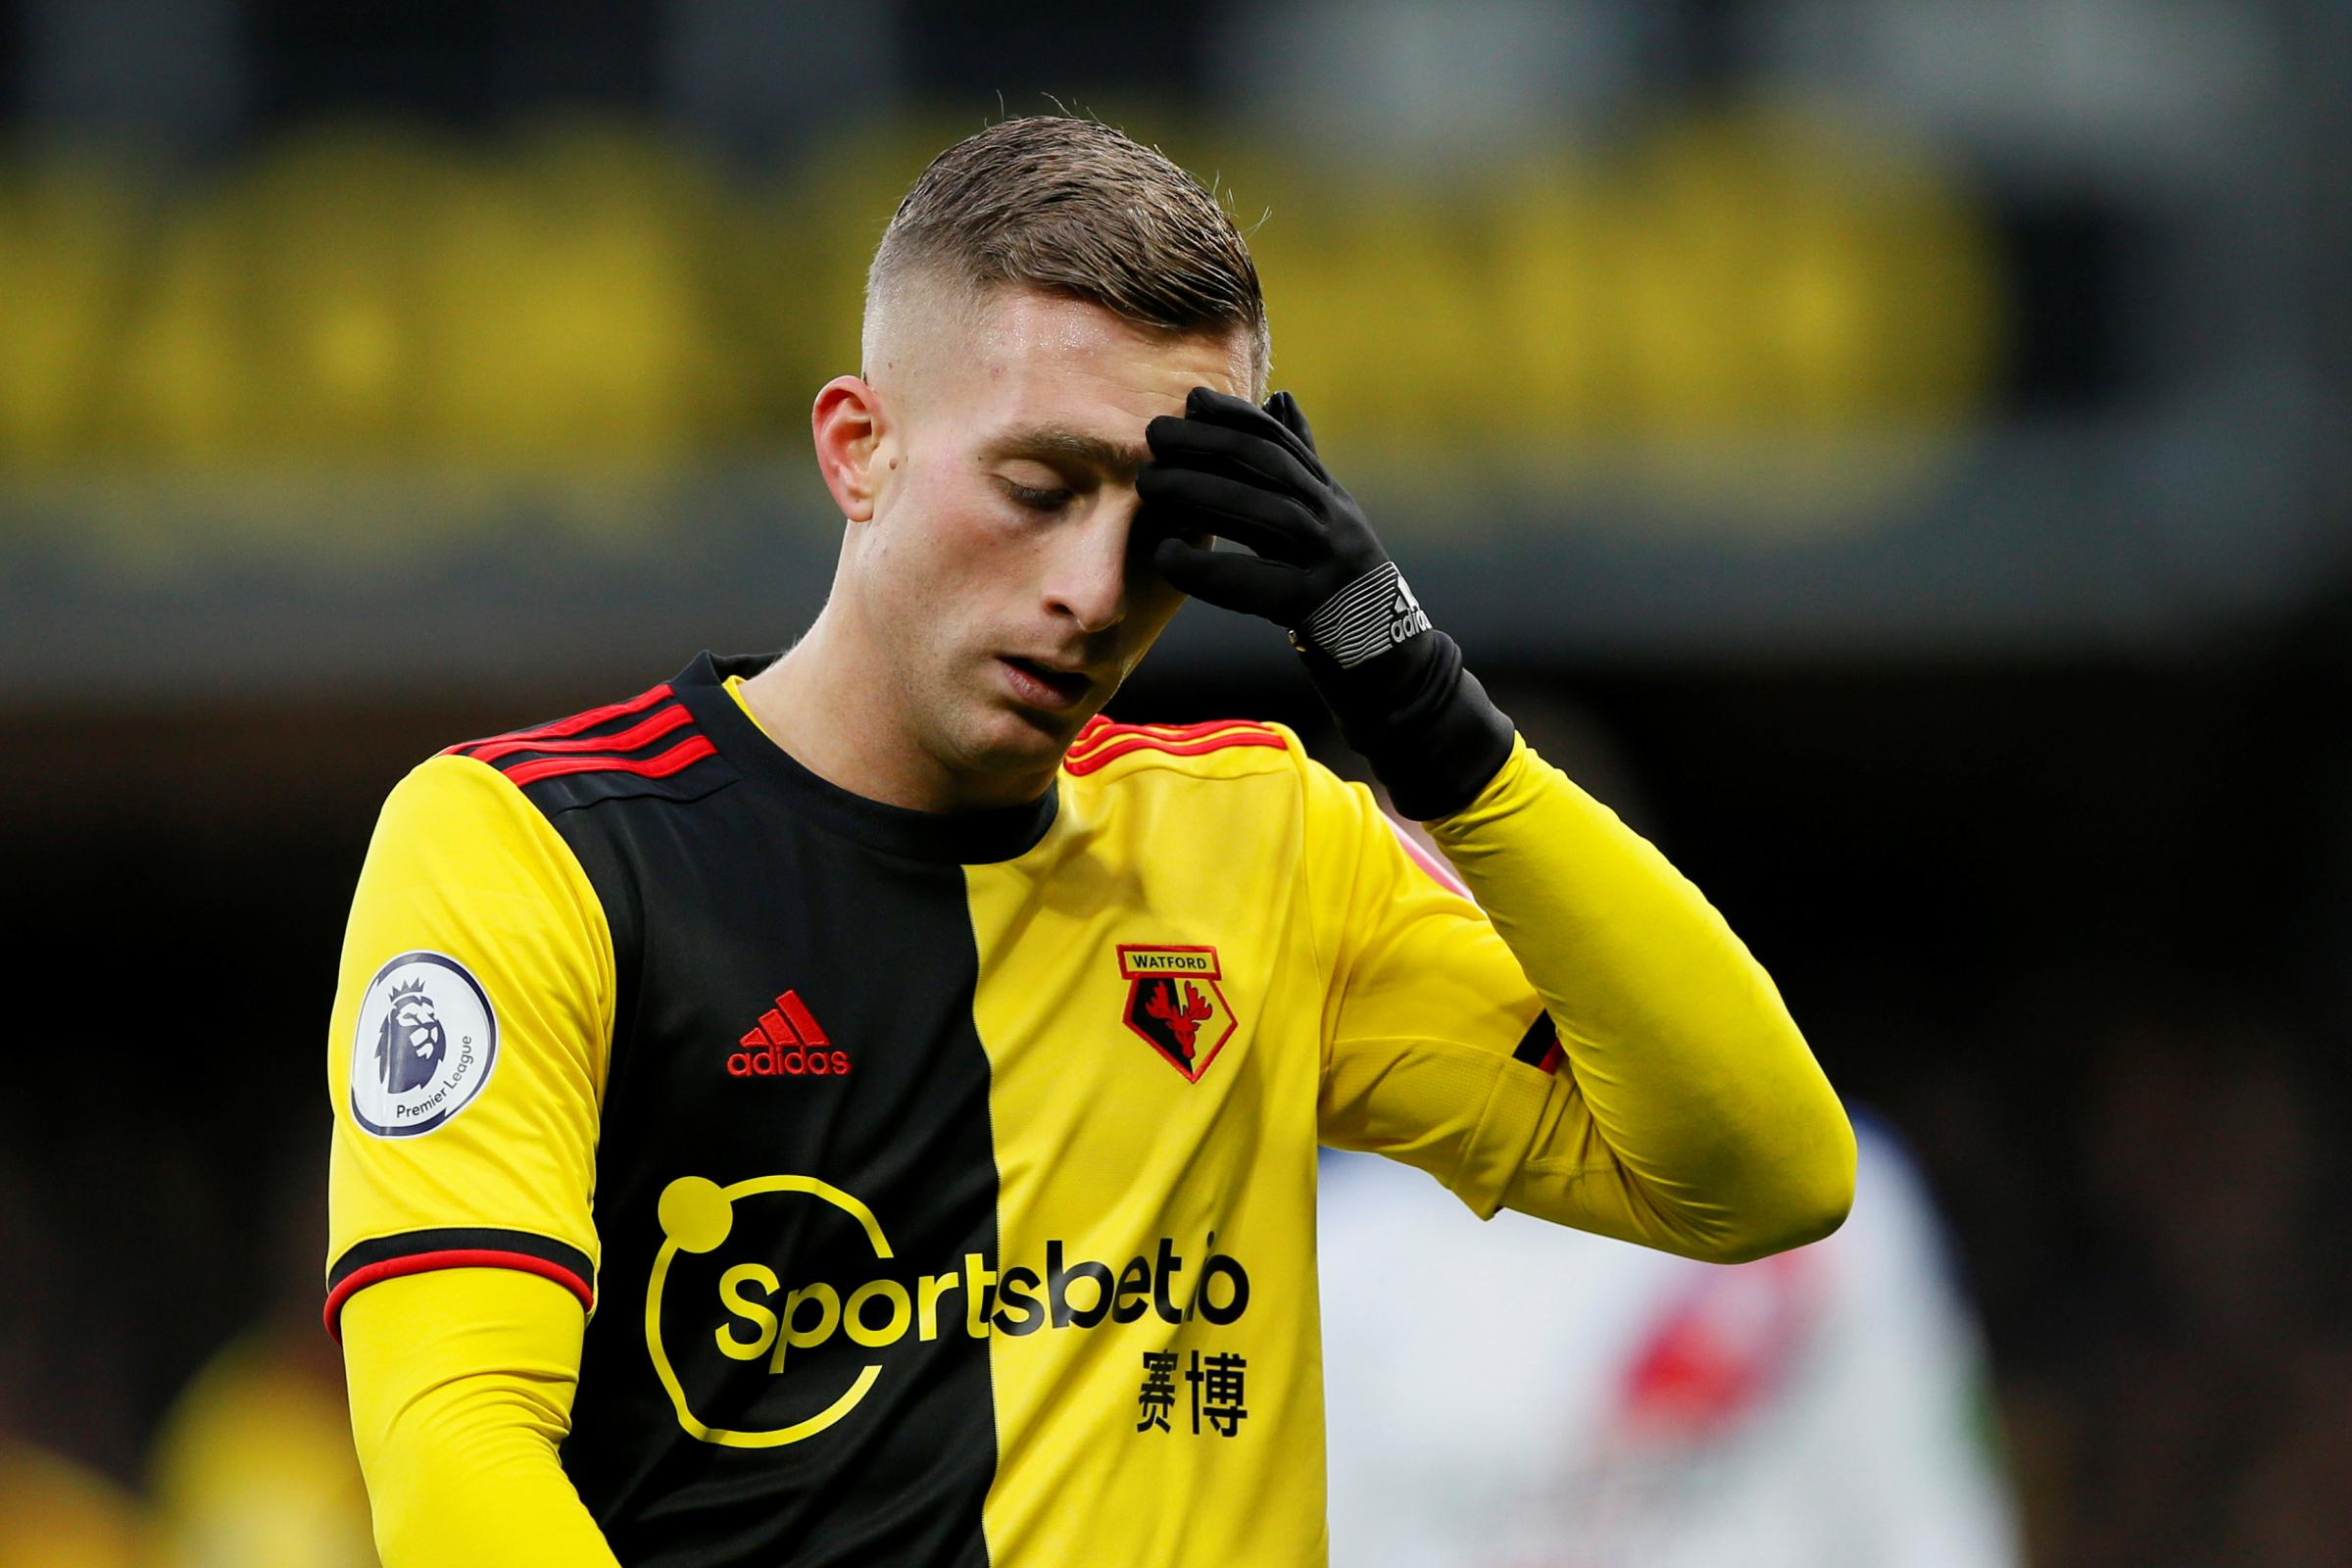 Gerard Deulofeu could leave Watford with clubs expressing interest